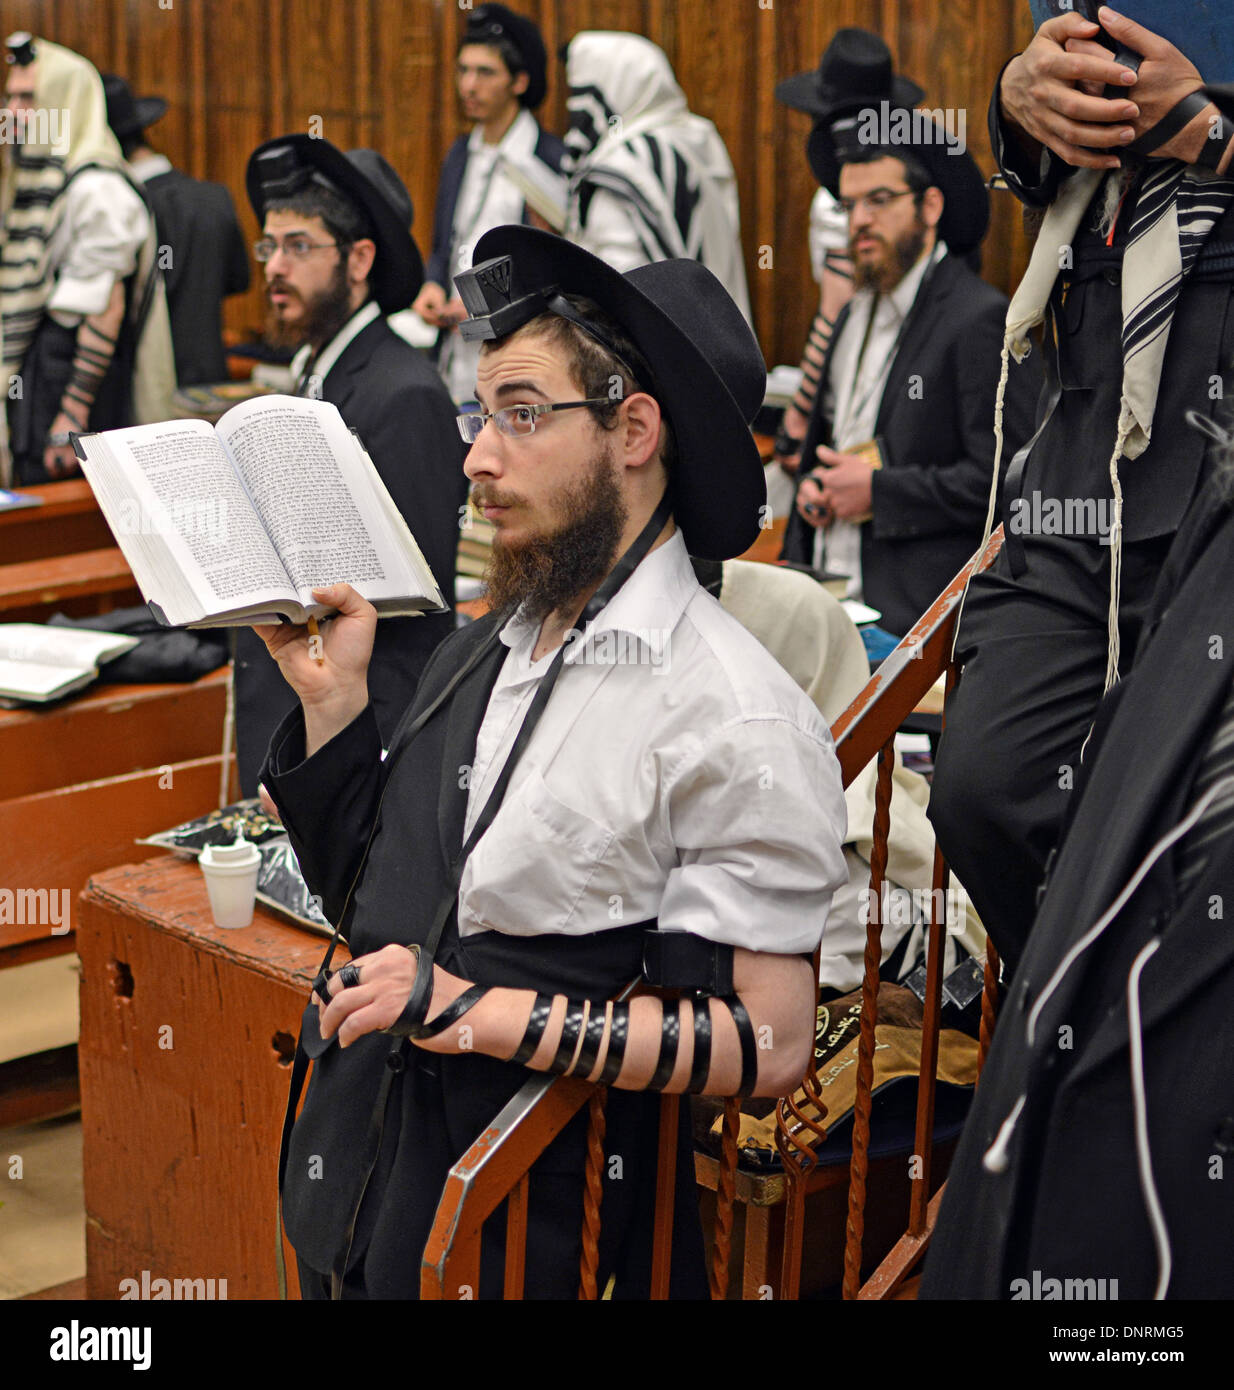 Religious young Jewish men at morning prayers at the Lubavitch headquarters in Crown Heights, Brooklyn, New York - Stock Image